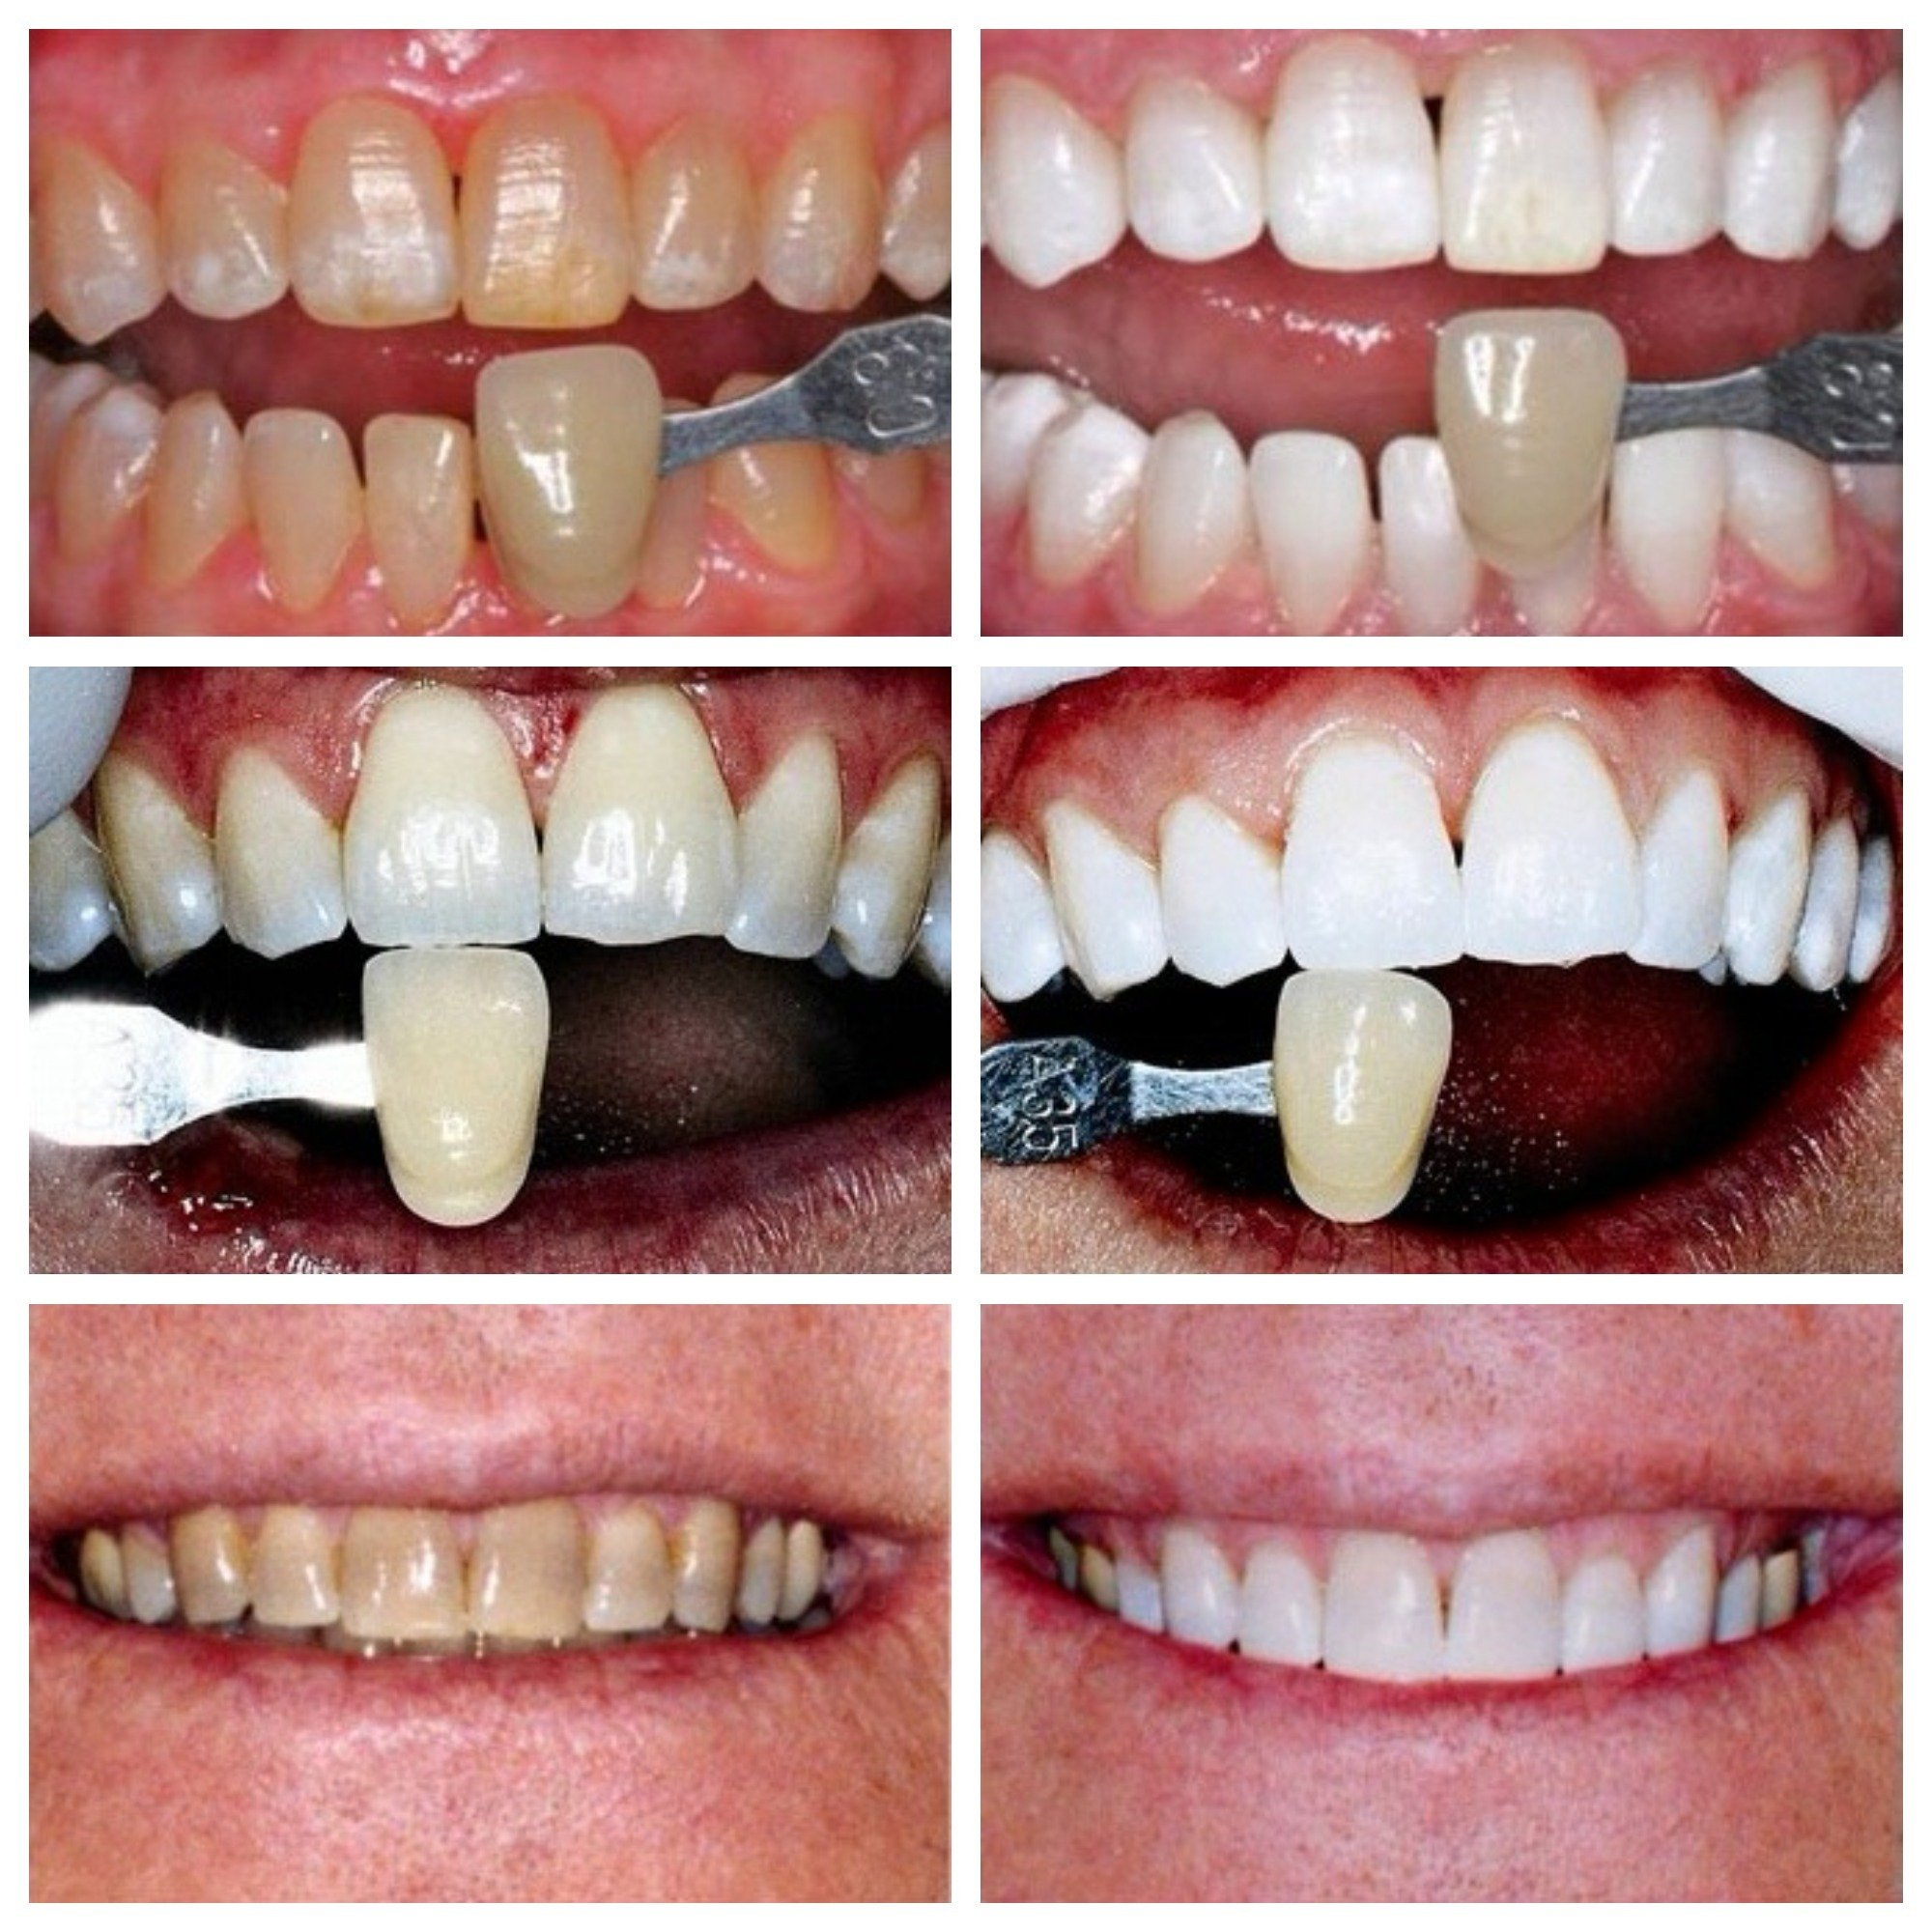 Can You Use Snow Teeth Whitening More Than Once A Day